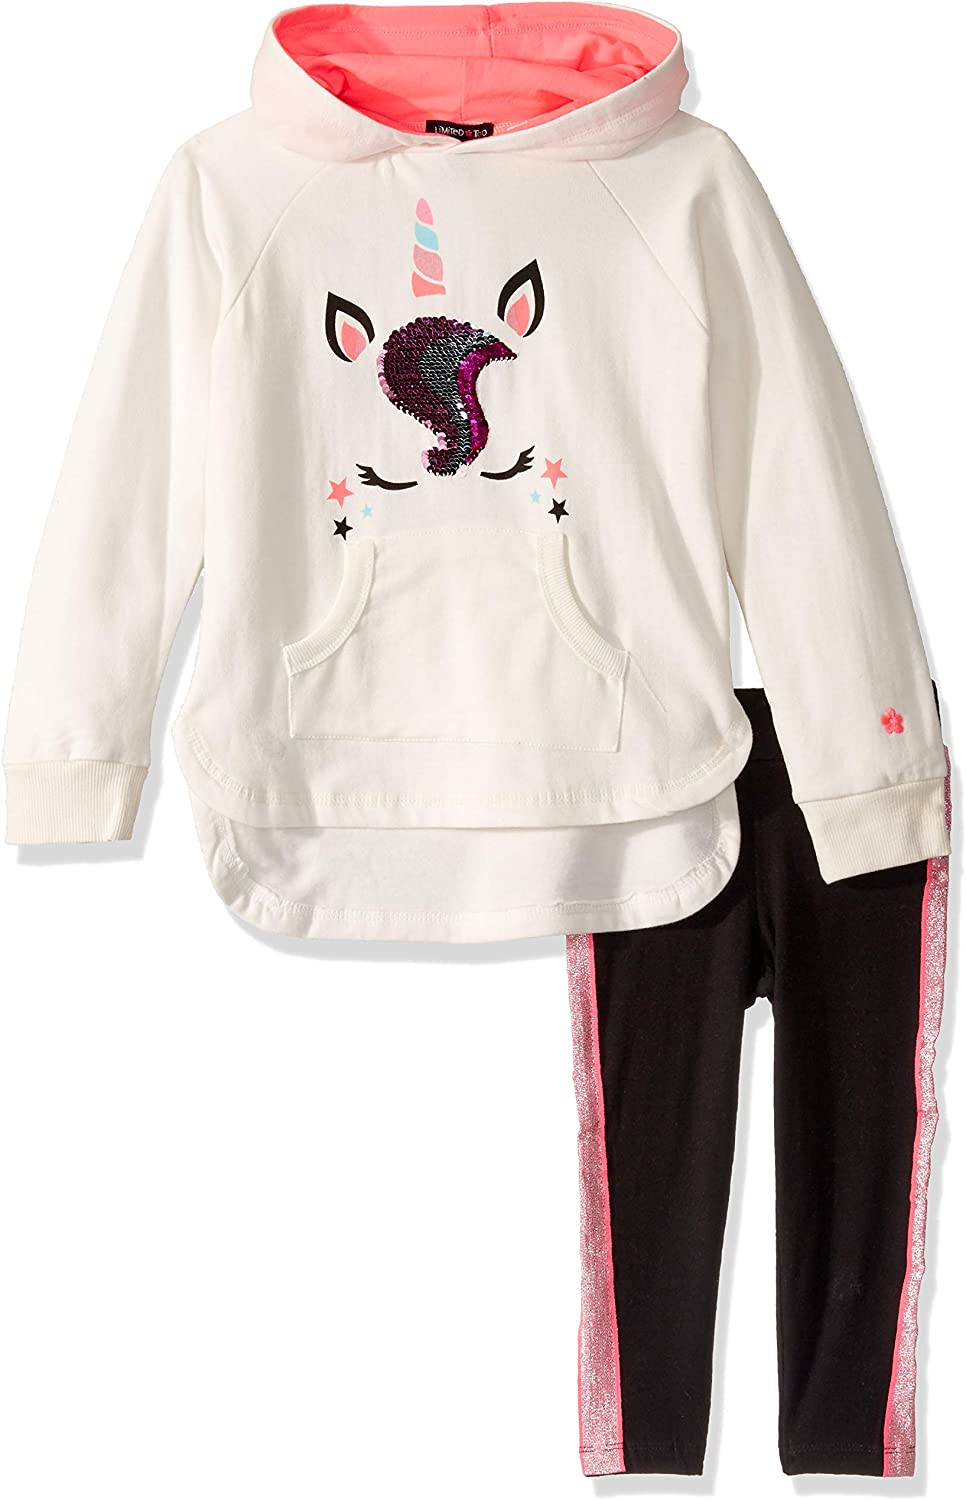 Limited Too Girls 2 Piece Fashion Fleece Hoodie and Legging Set